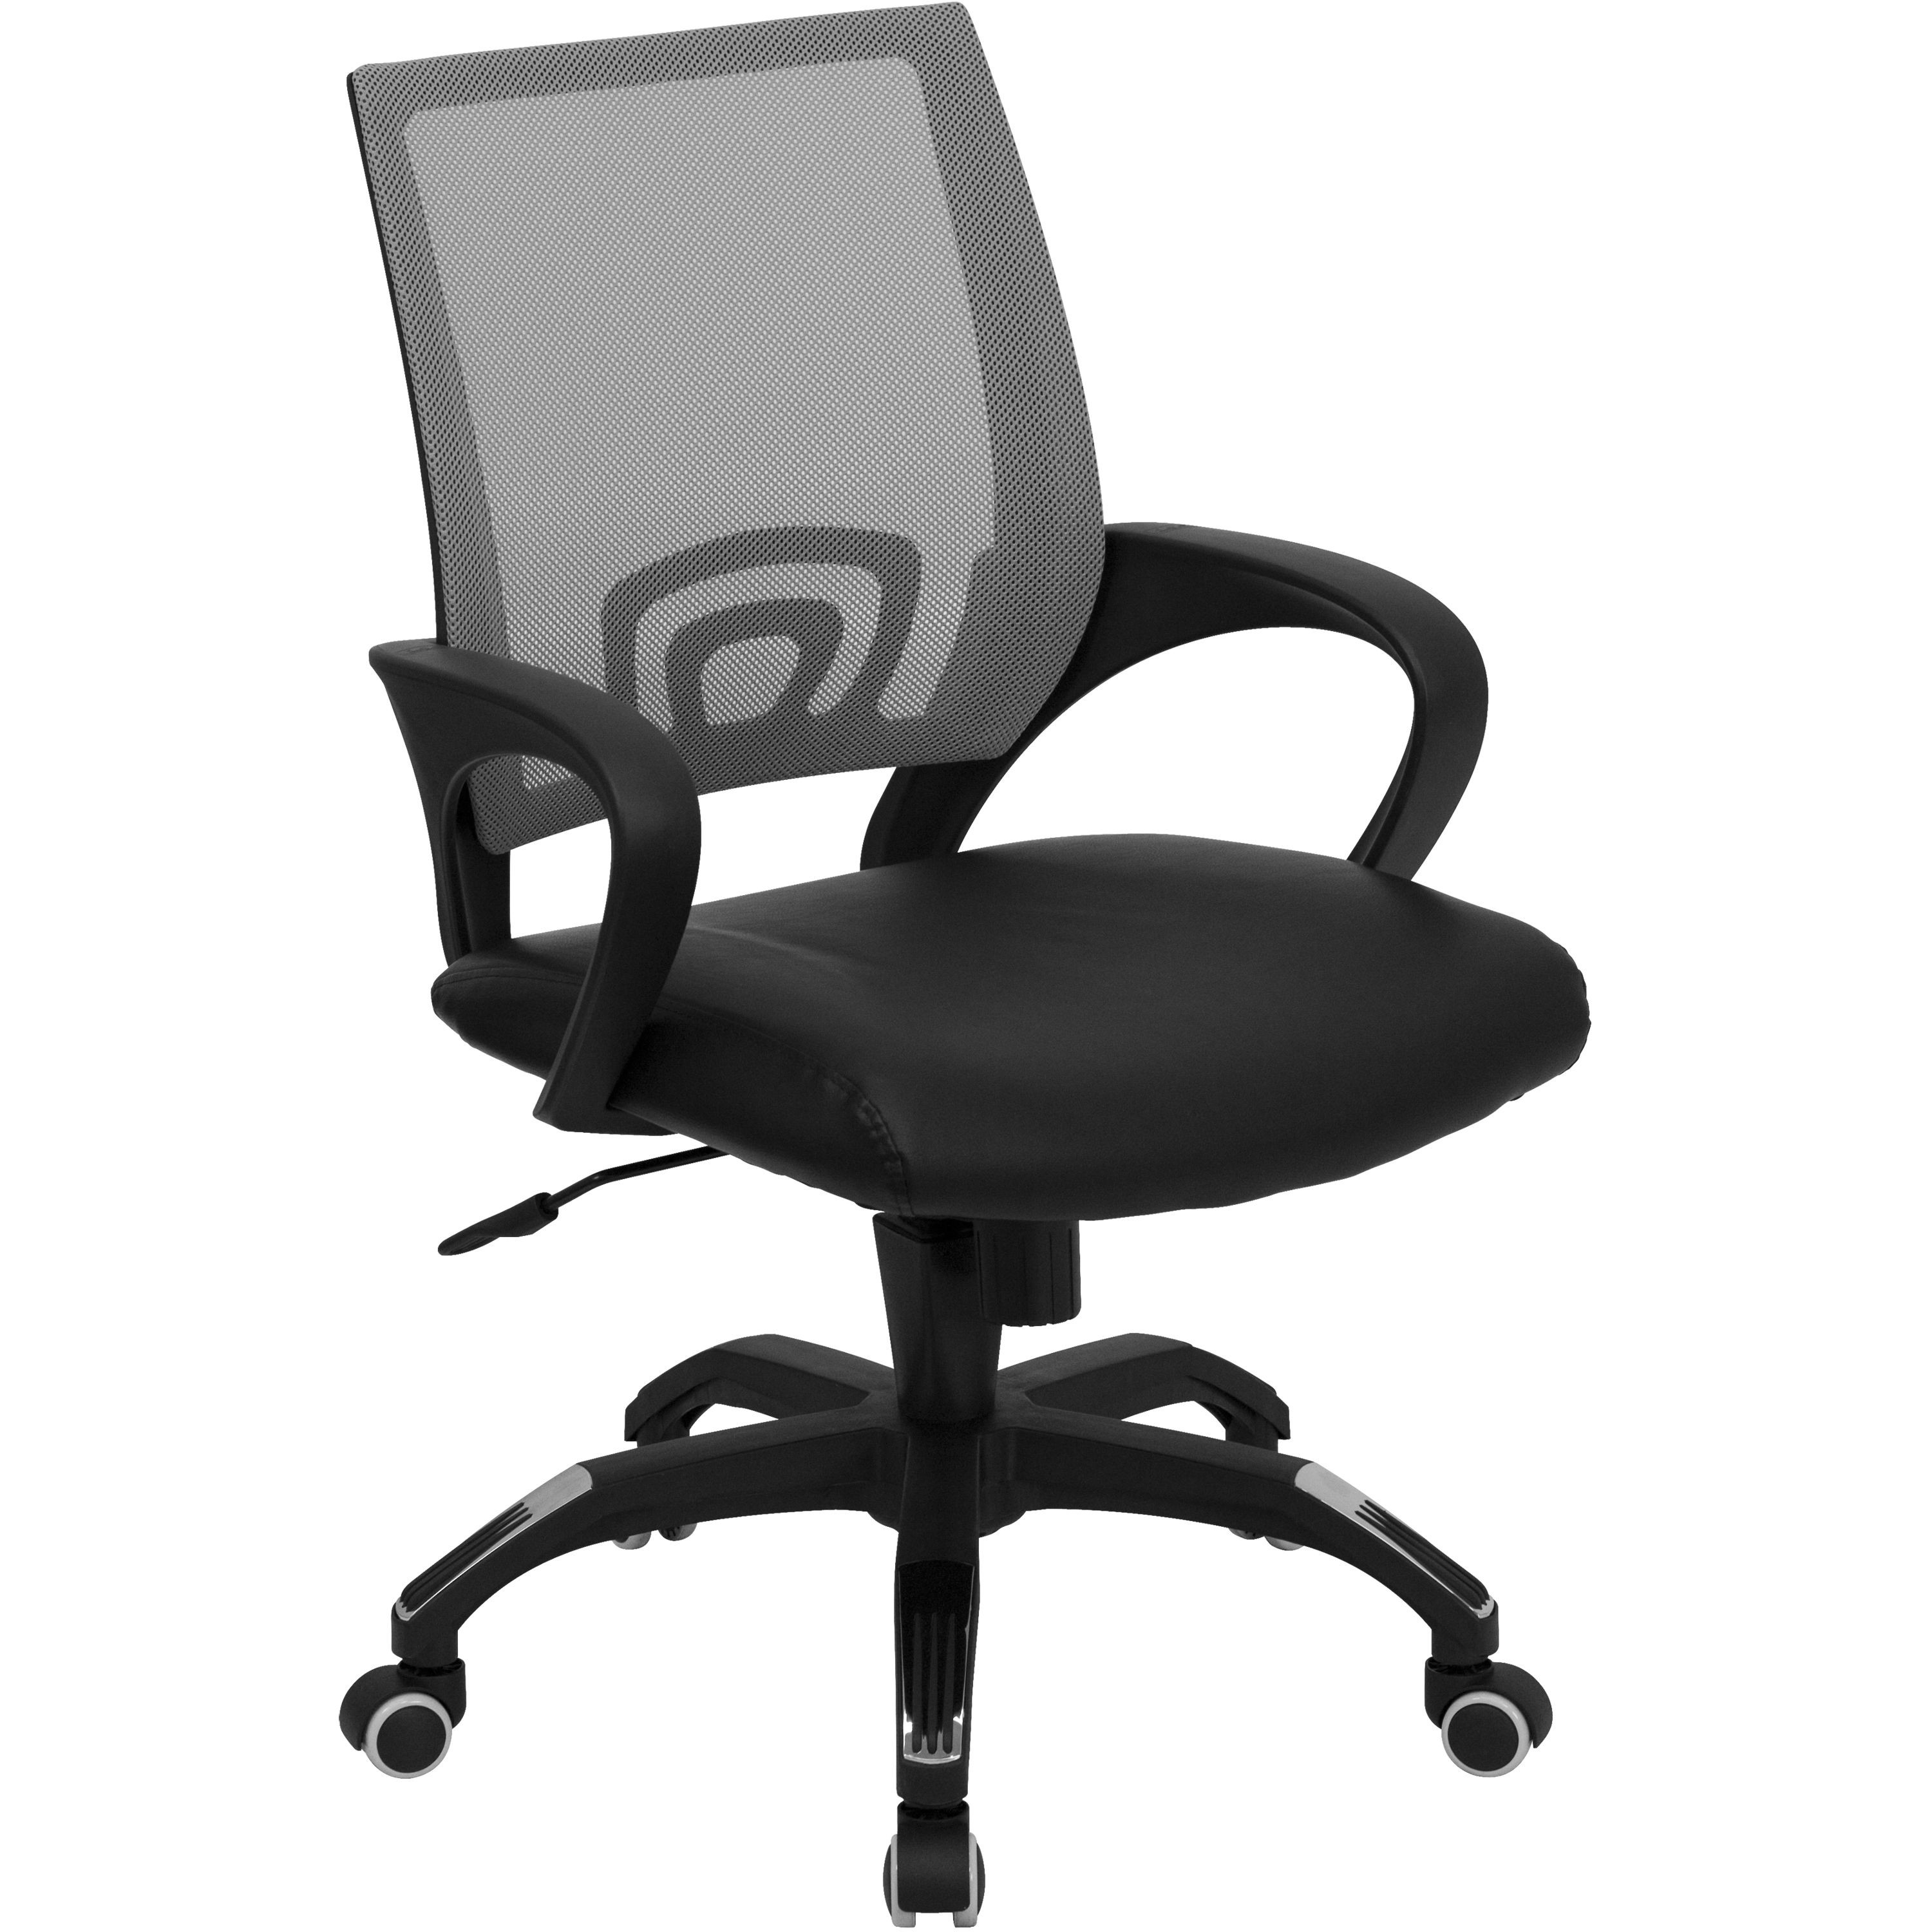 Flash Furniture CP-B176A01-GRAY-GG Gray Mesh Office Chair with Black Leather Seat